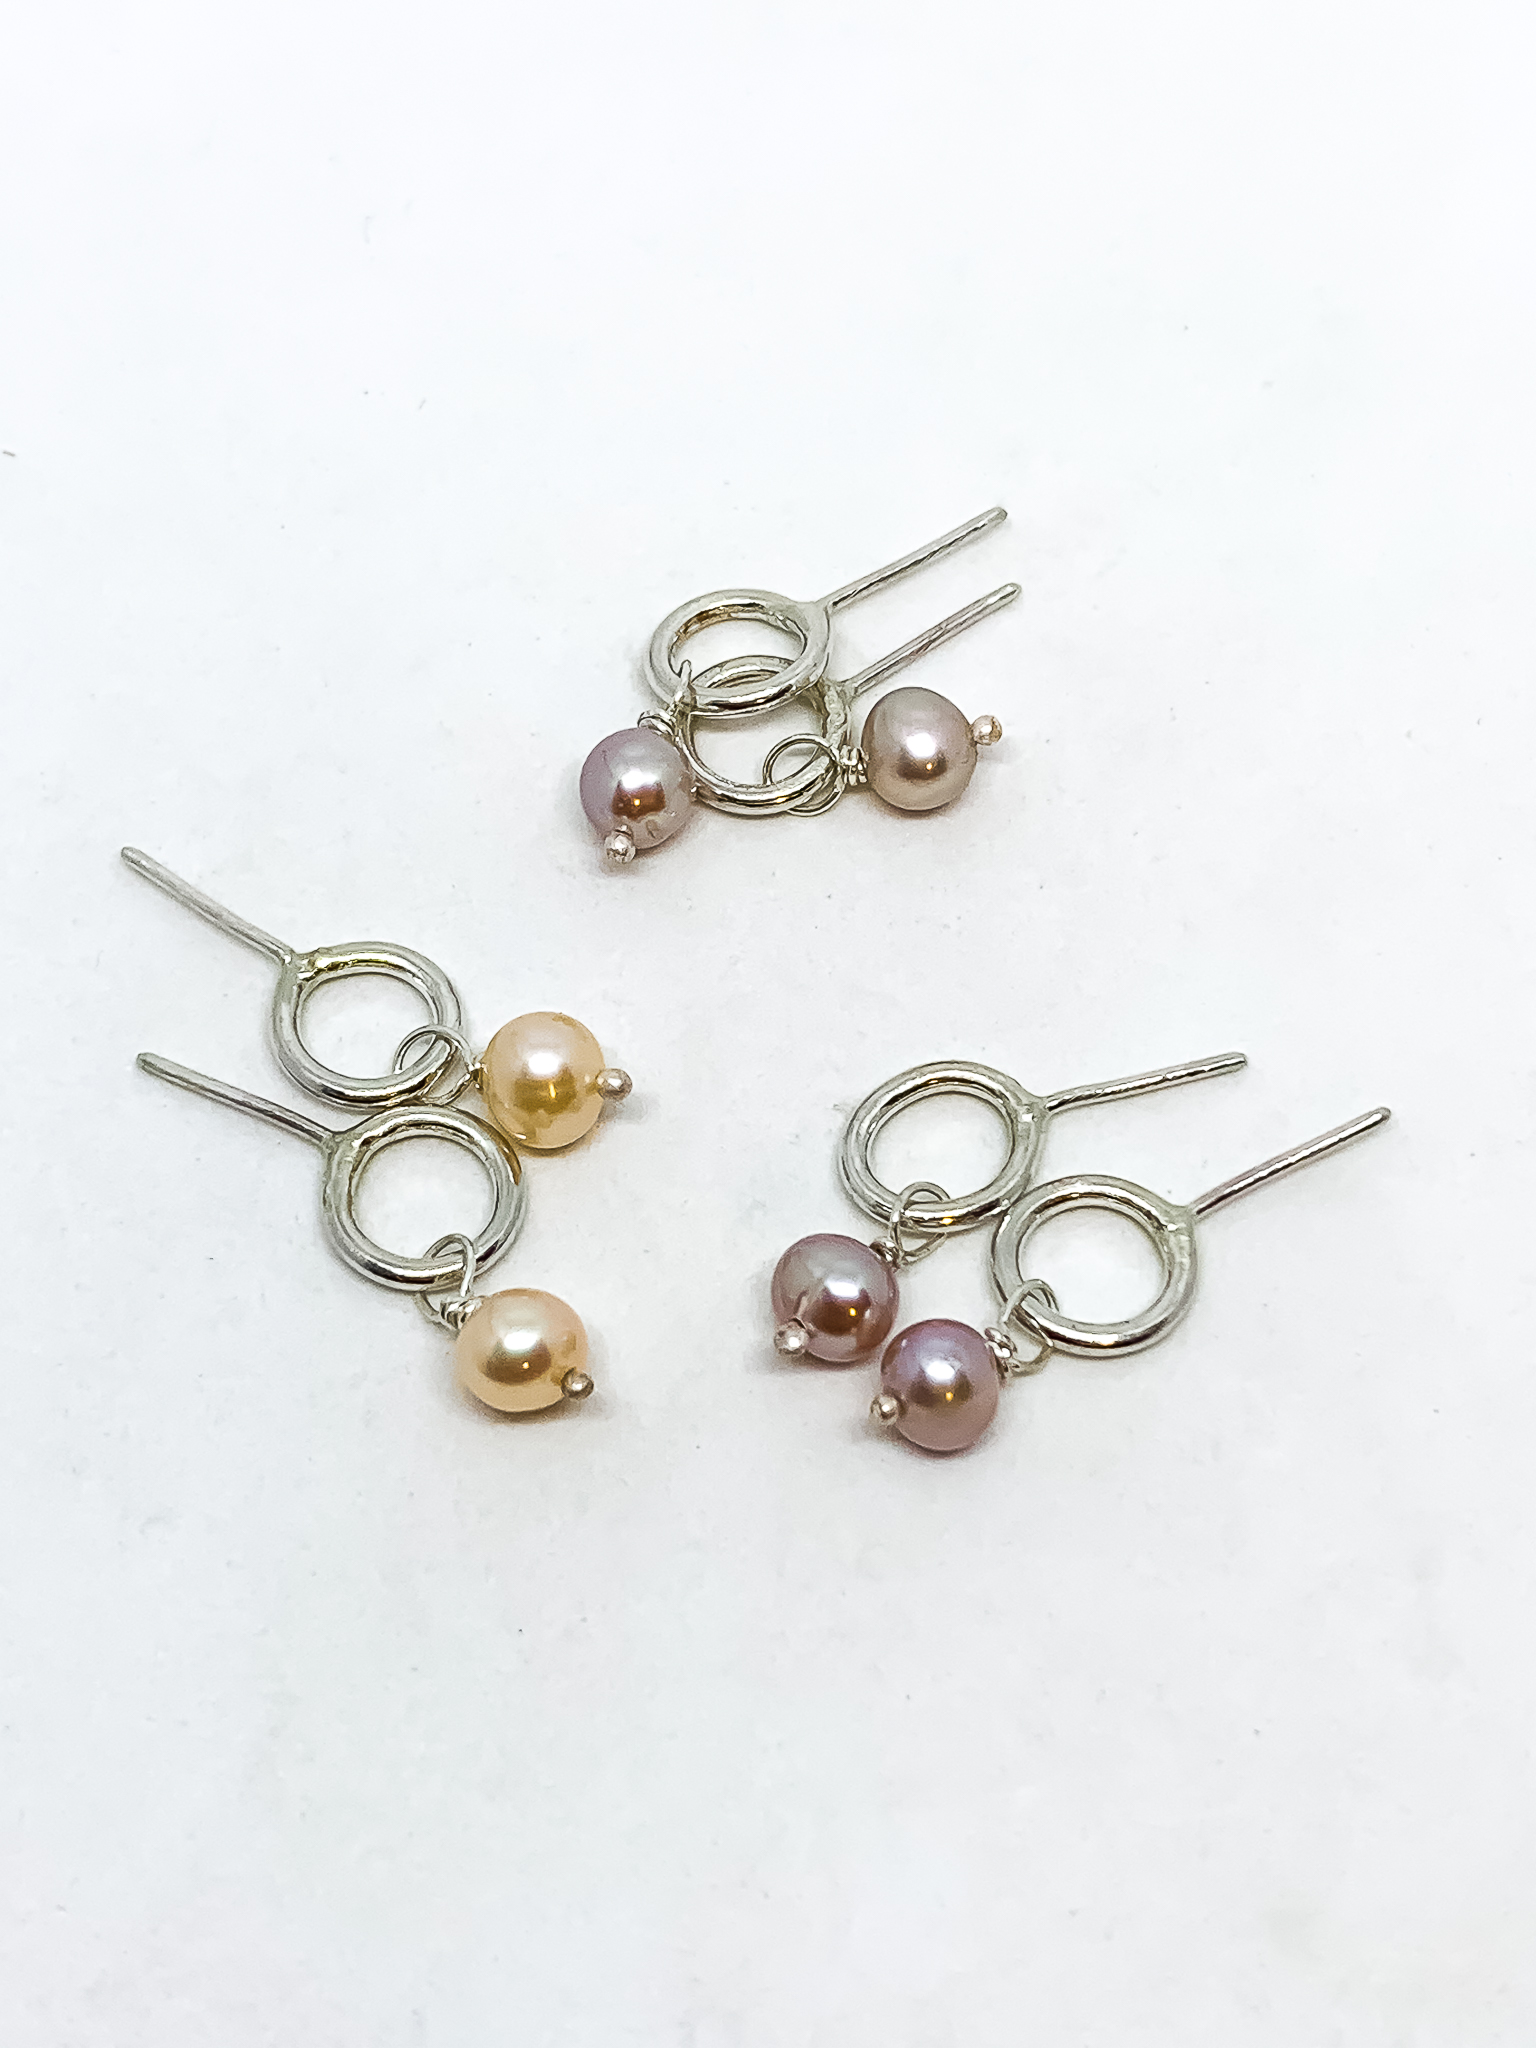 Abstract Circle Earrings with Pearl Charms | Studs | Sterling Silver + Fresh Water Pearls